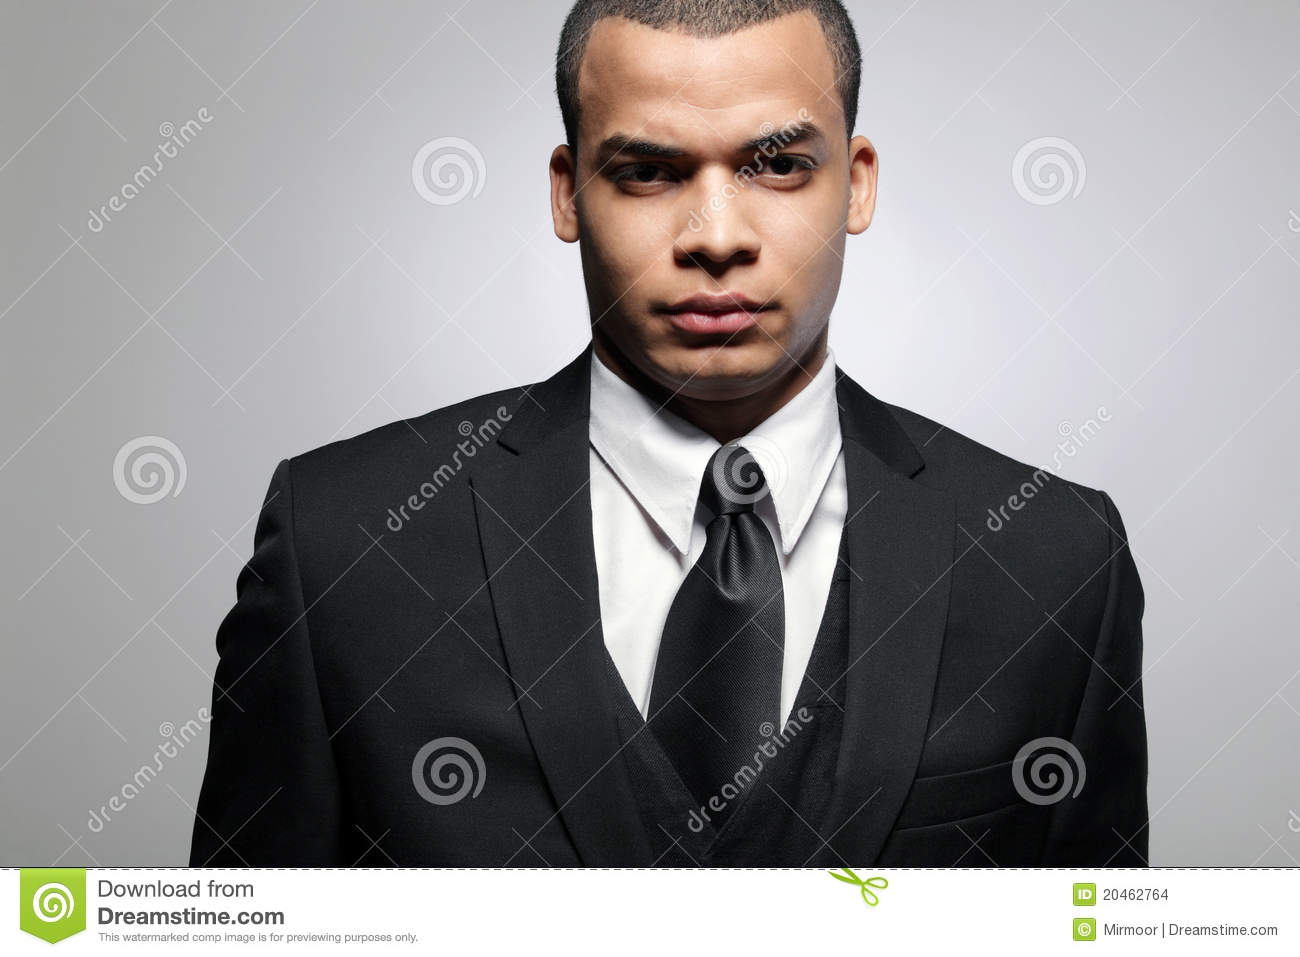 African-American business man in black suit.